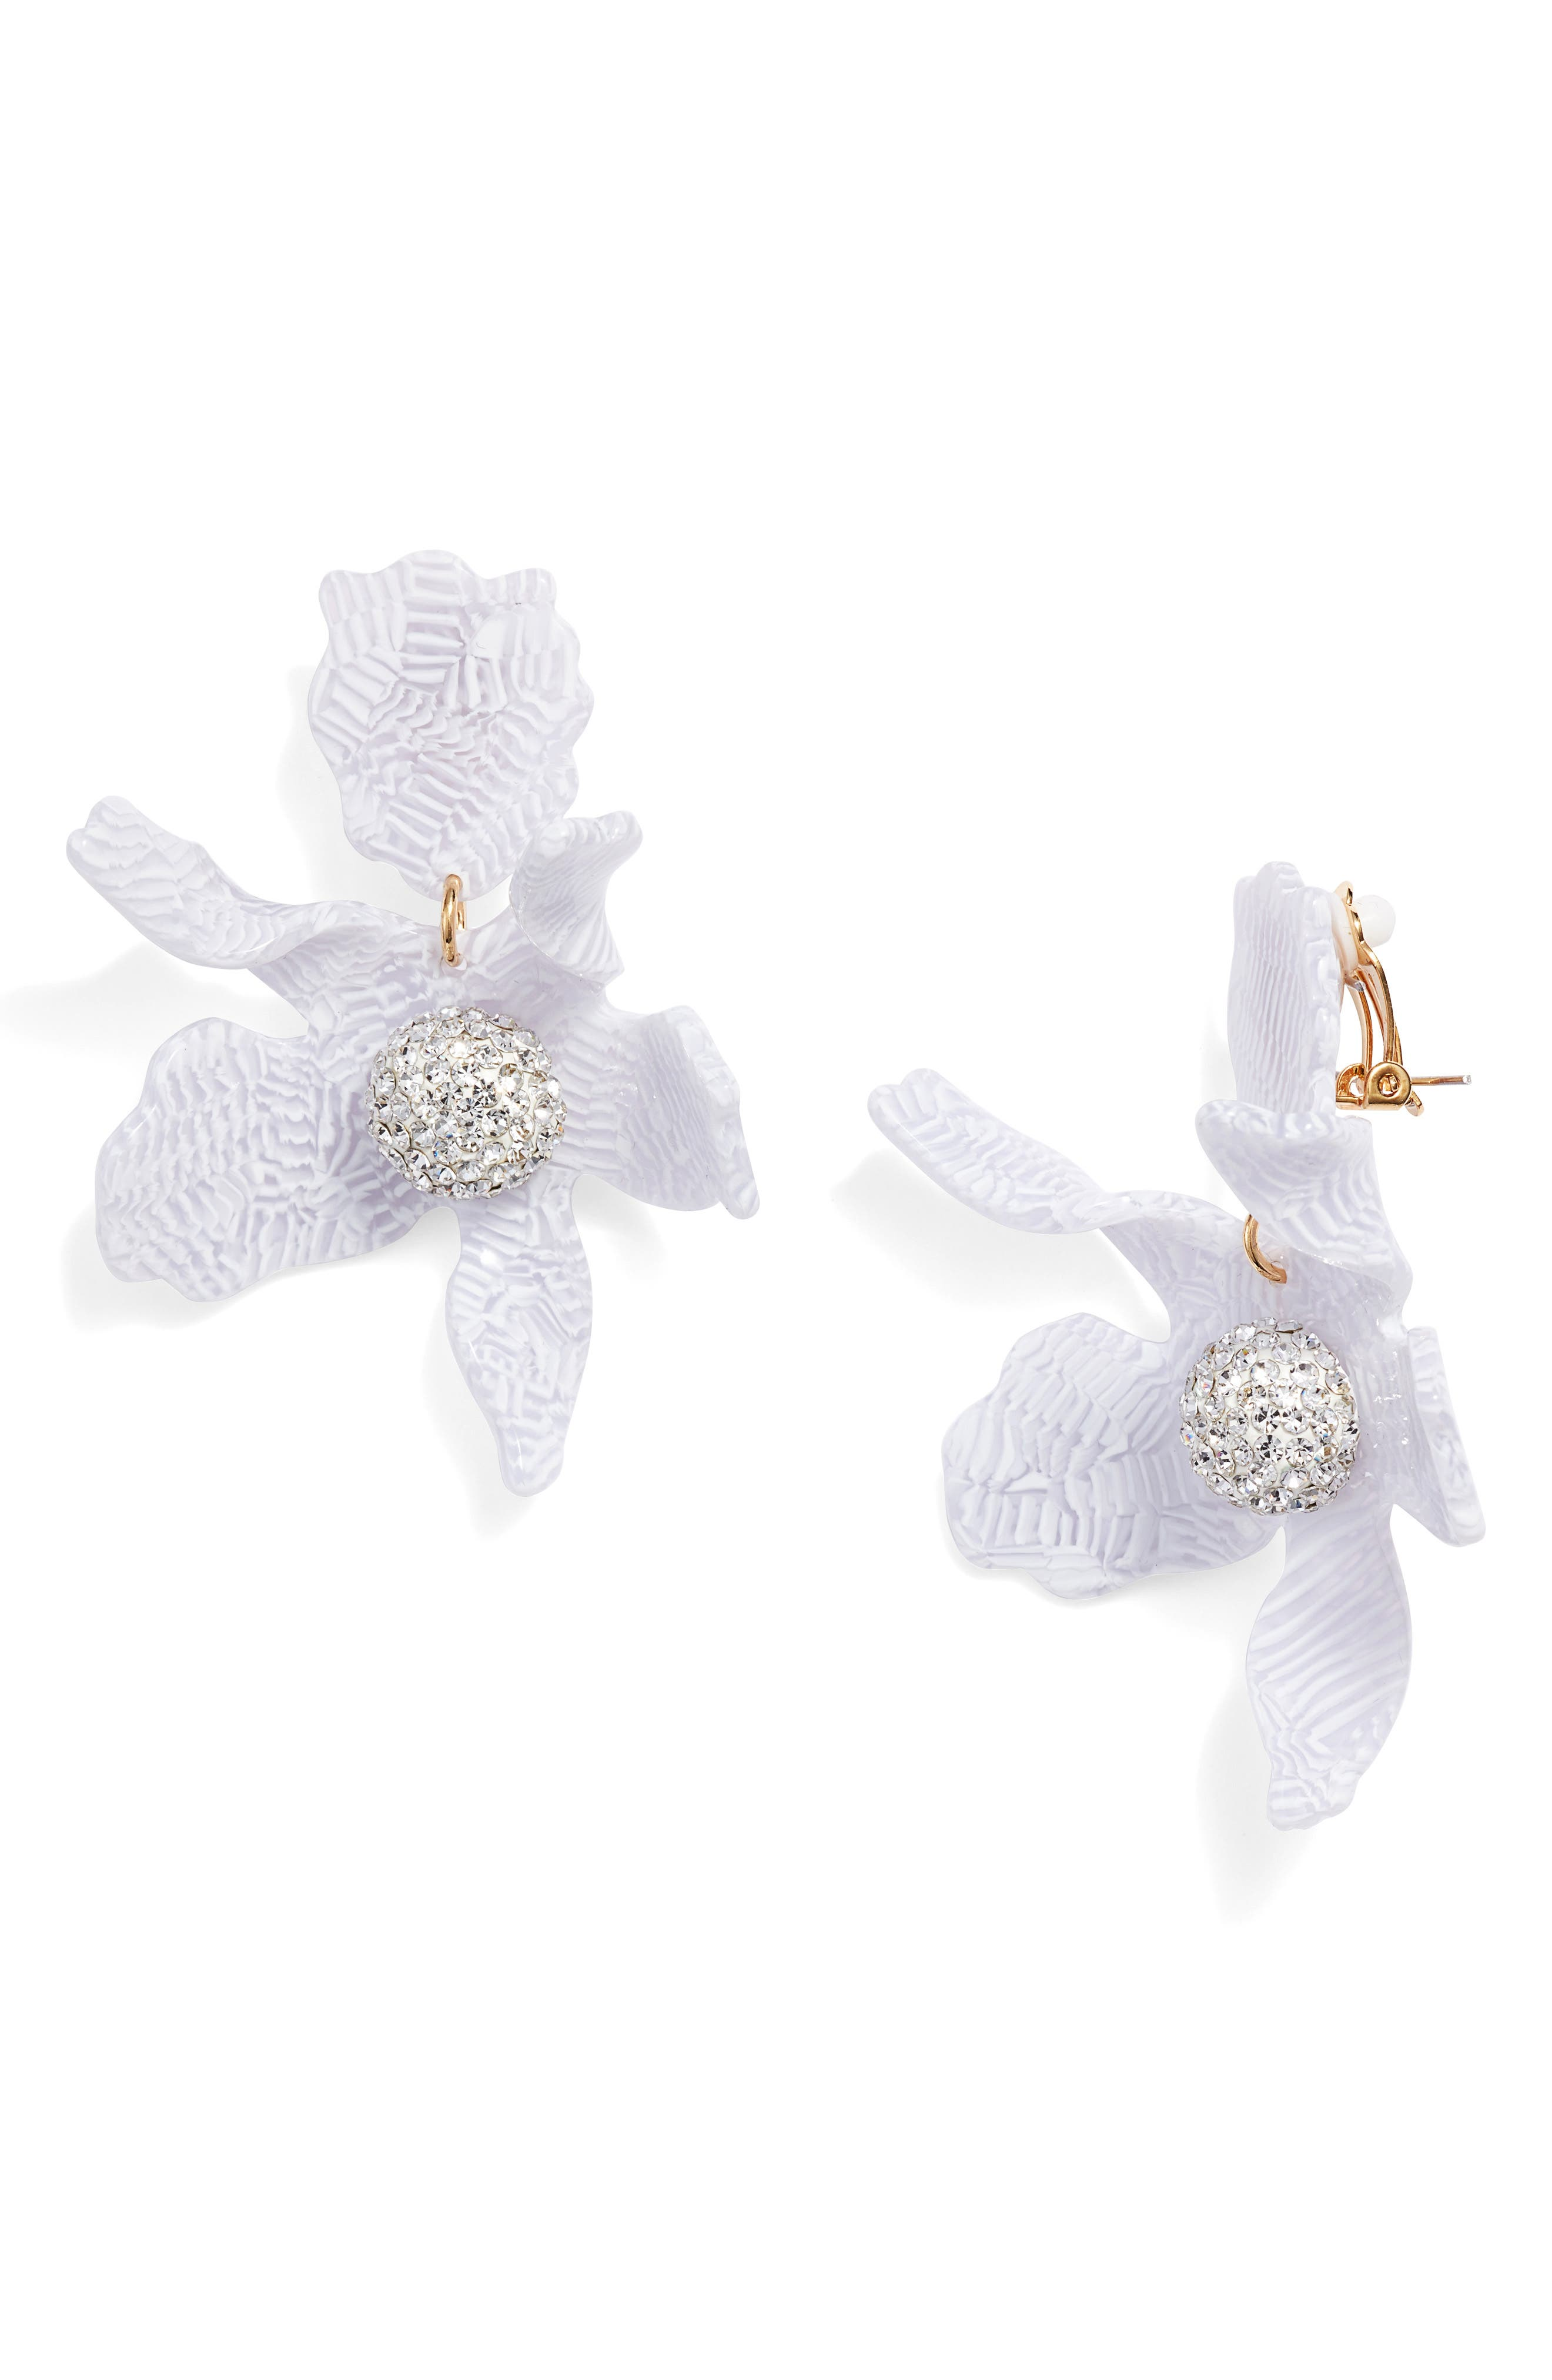 Crystal Lily Clip Earrings,                             Main thumbnail 1, color,                             100